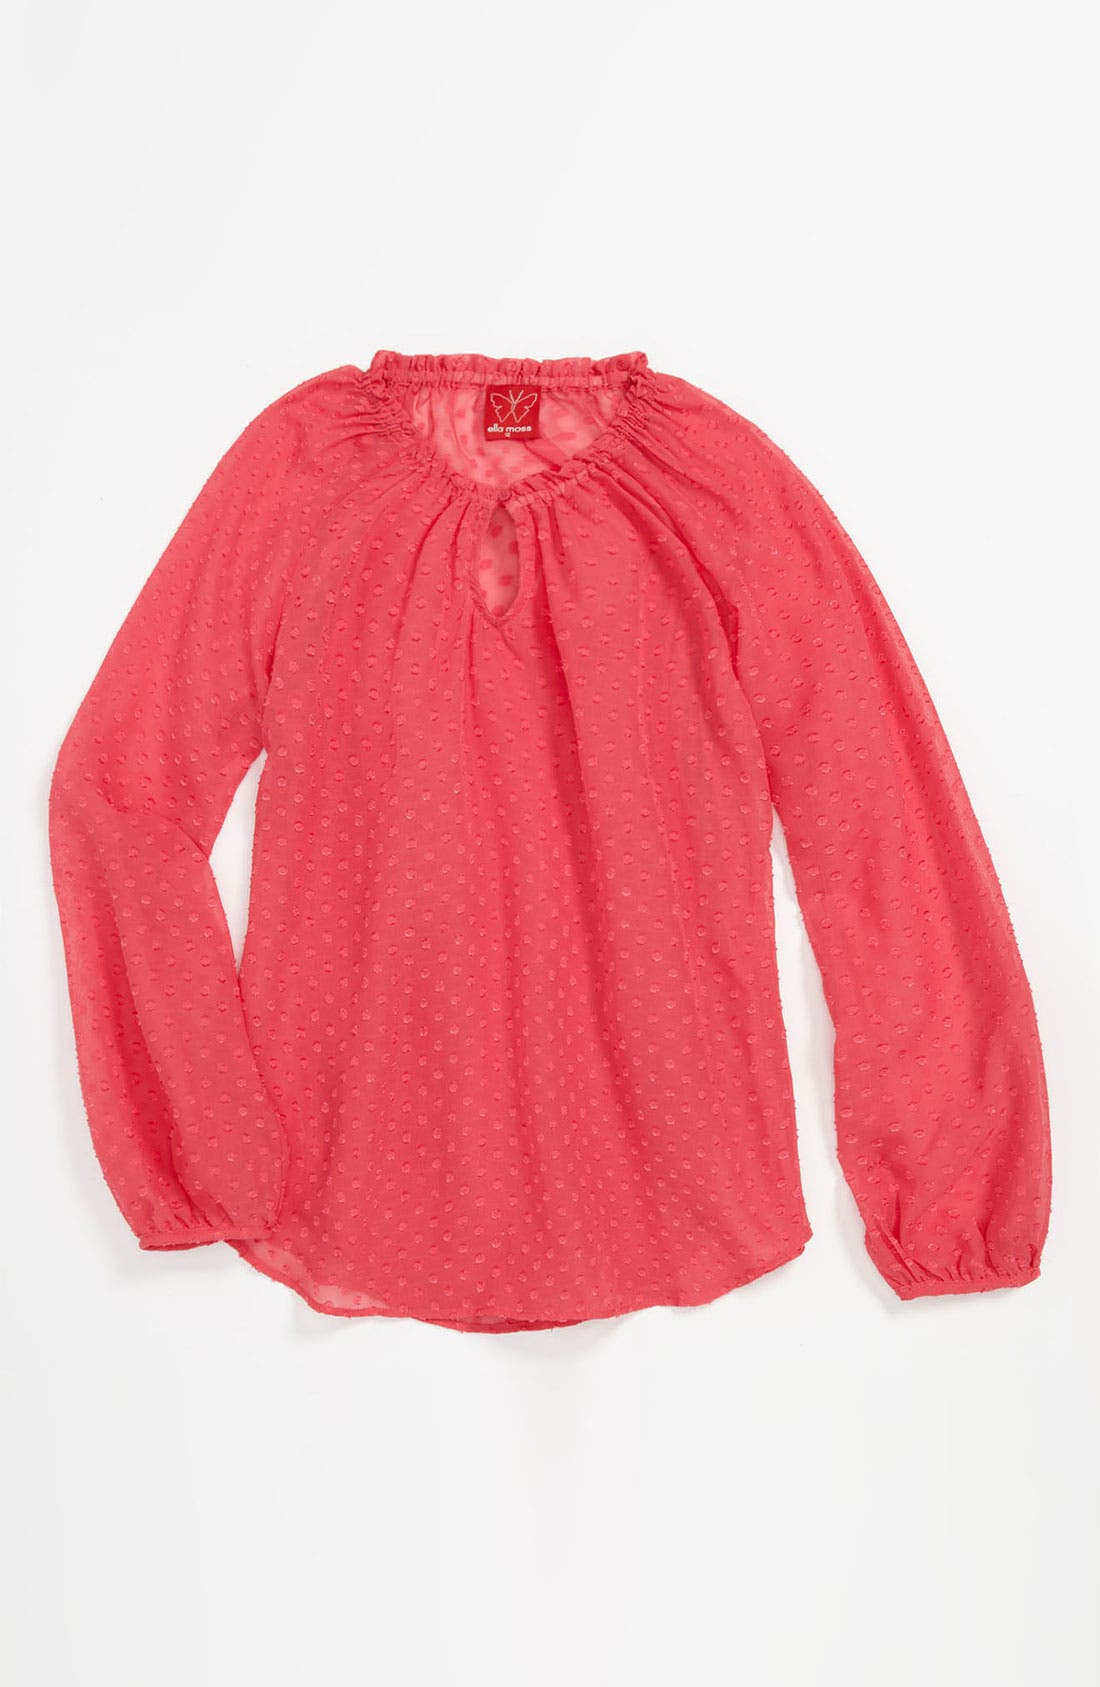 Main Image - Ella Moss 'Parisienne' Top (Big Girls)